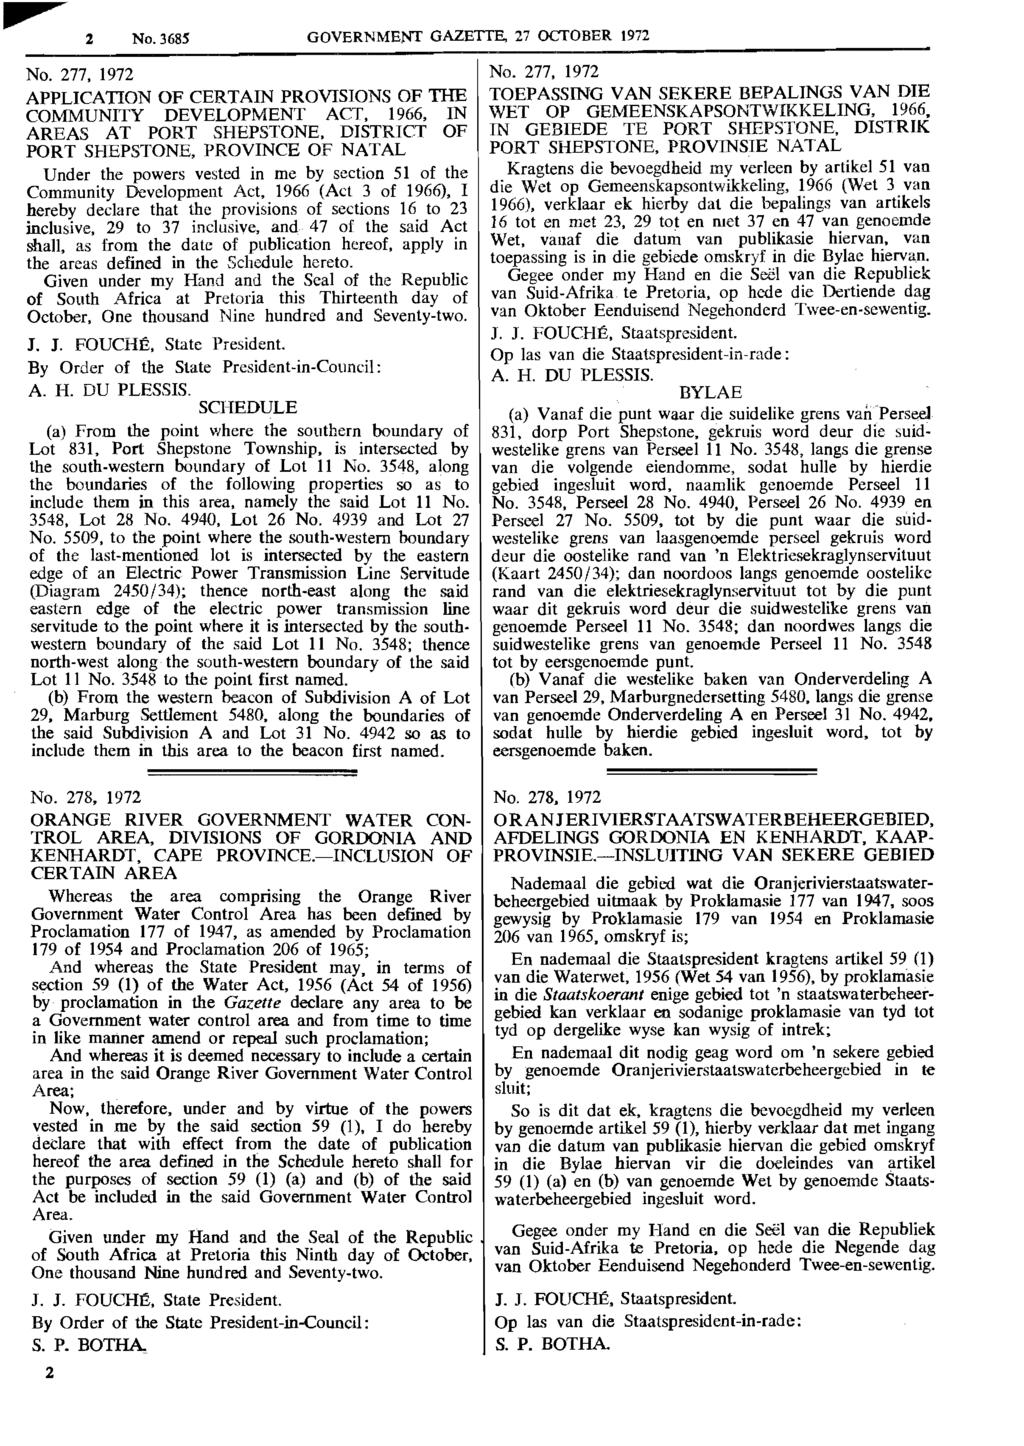 No. 3685 GOVERNMENT GAZETTE, 27 OCTOBER 1972 No. 277, 1972 APPLICATION OF CERTAIN PROVISIONS OF THE COMMUNITY DEVELOPMENT ACT, 1966, IN AREAS AT PORT SHEPSTONE. DISTRICT OF PORT SHEPSTONE.